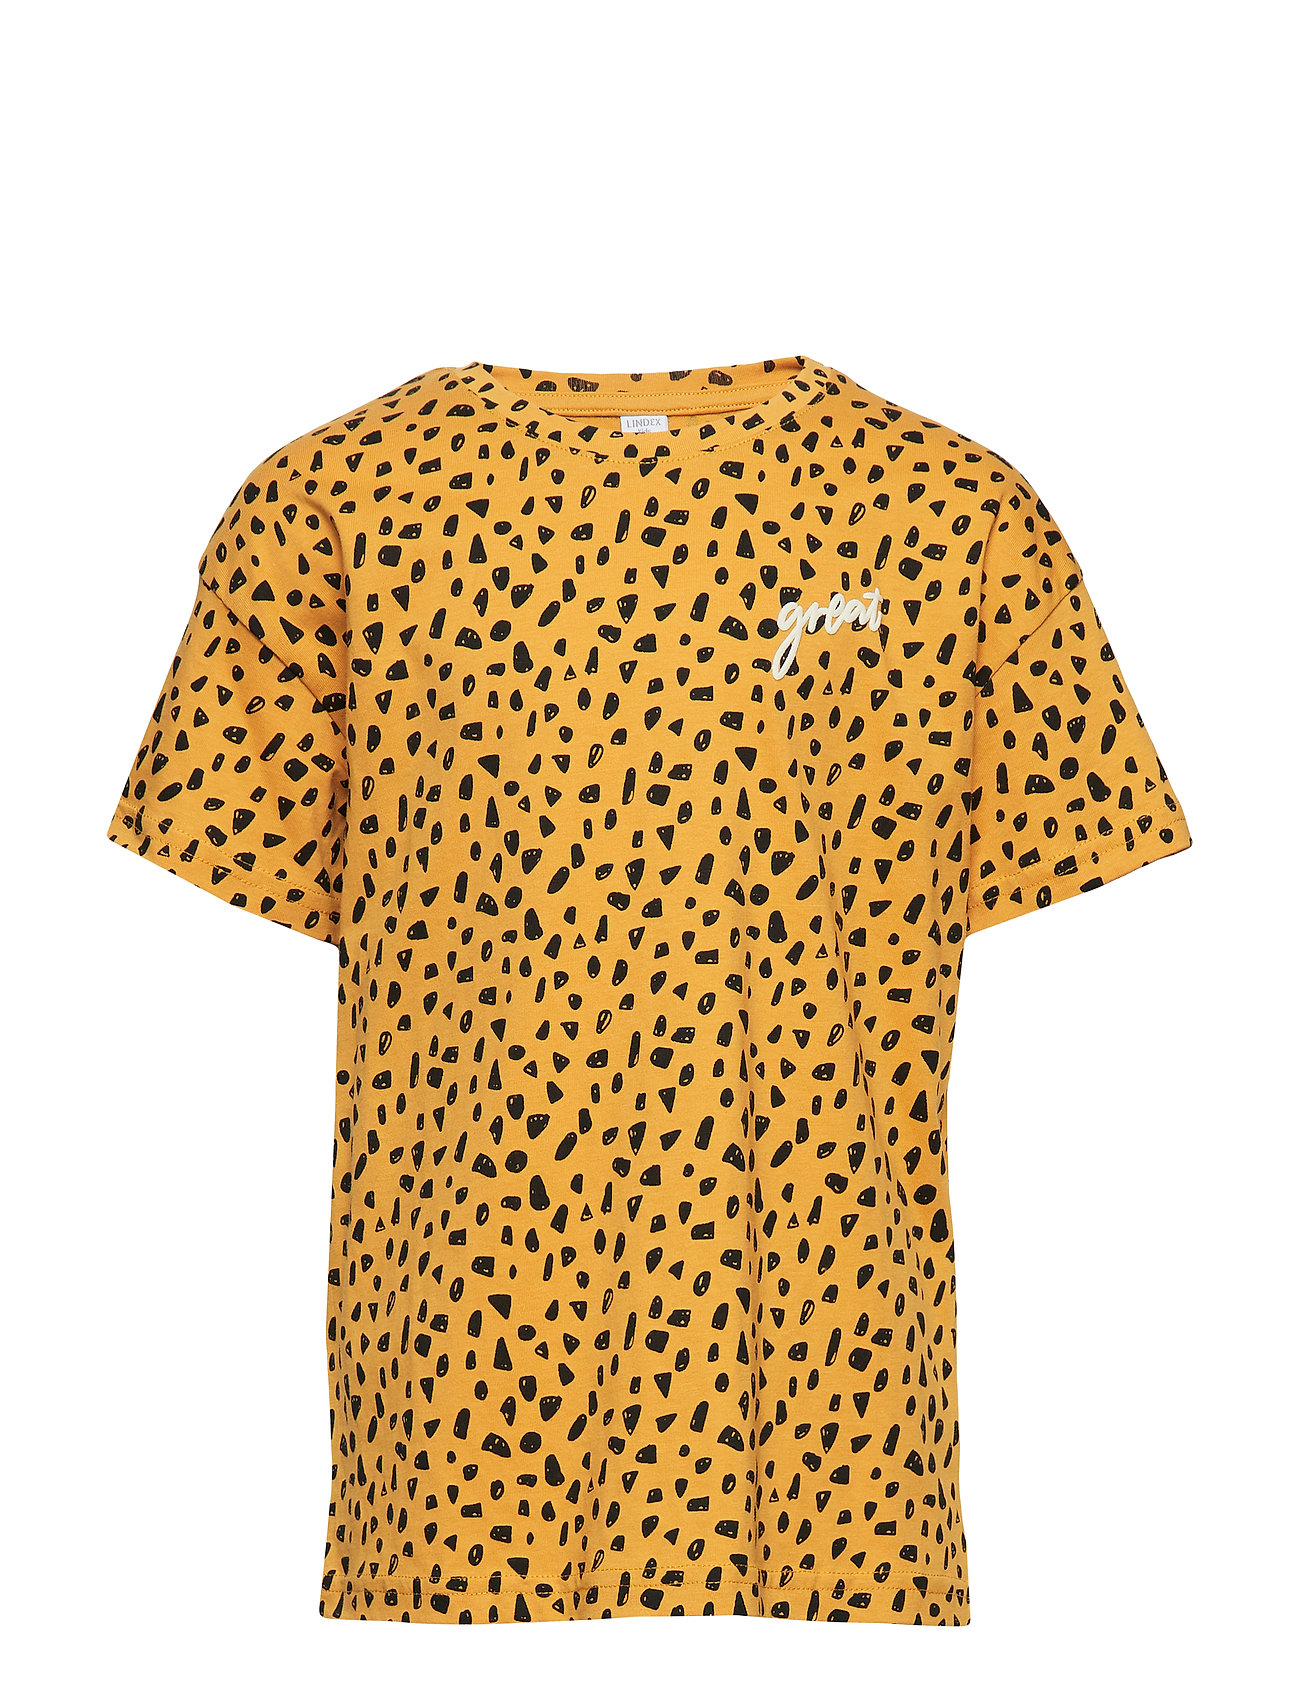 Lindex Oversized short sleeve t-shirt with pattern - DK YELLOW